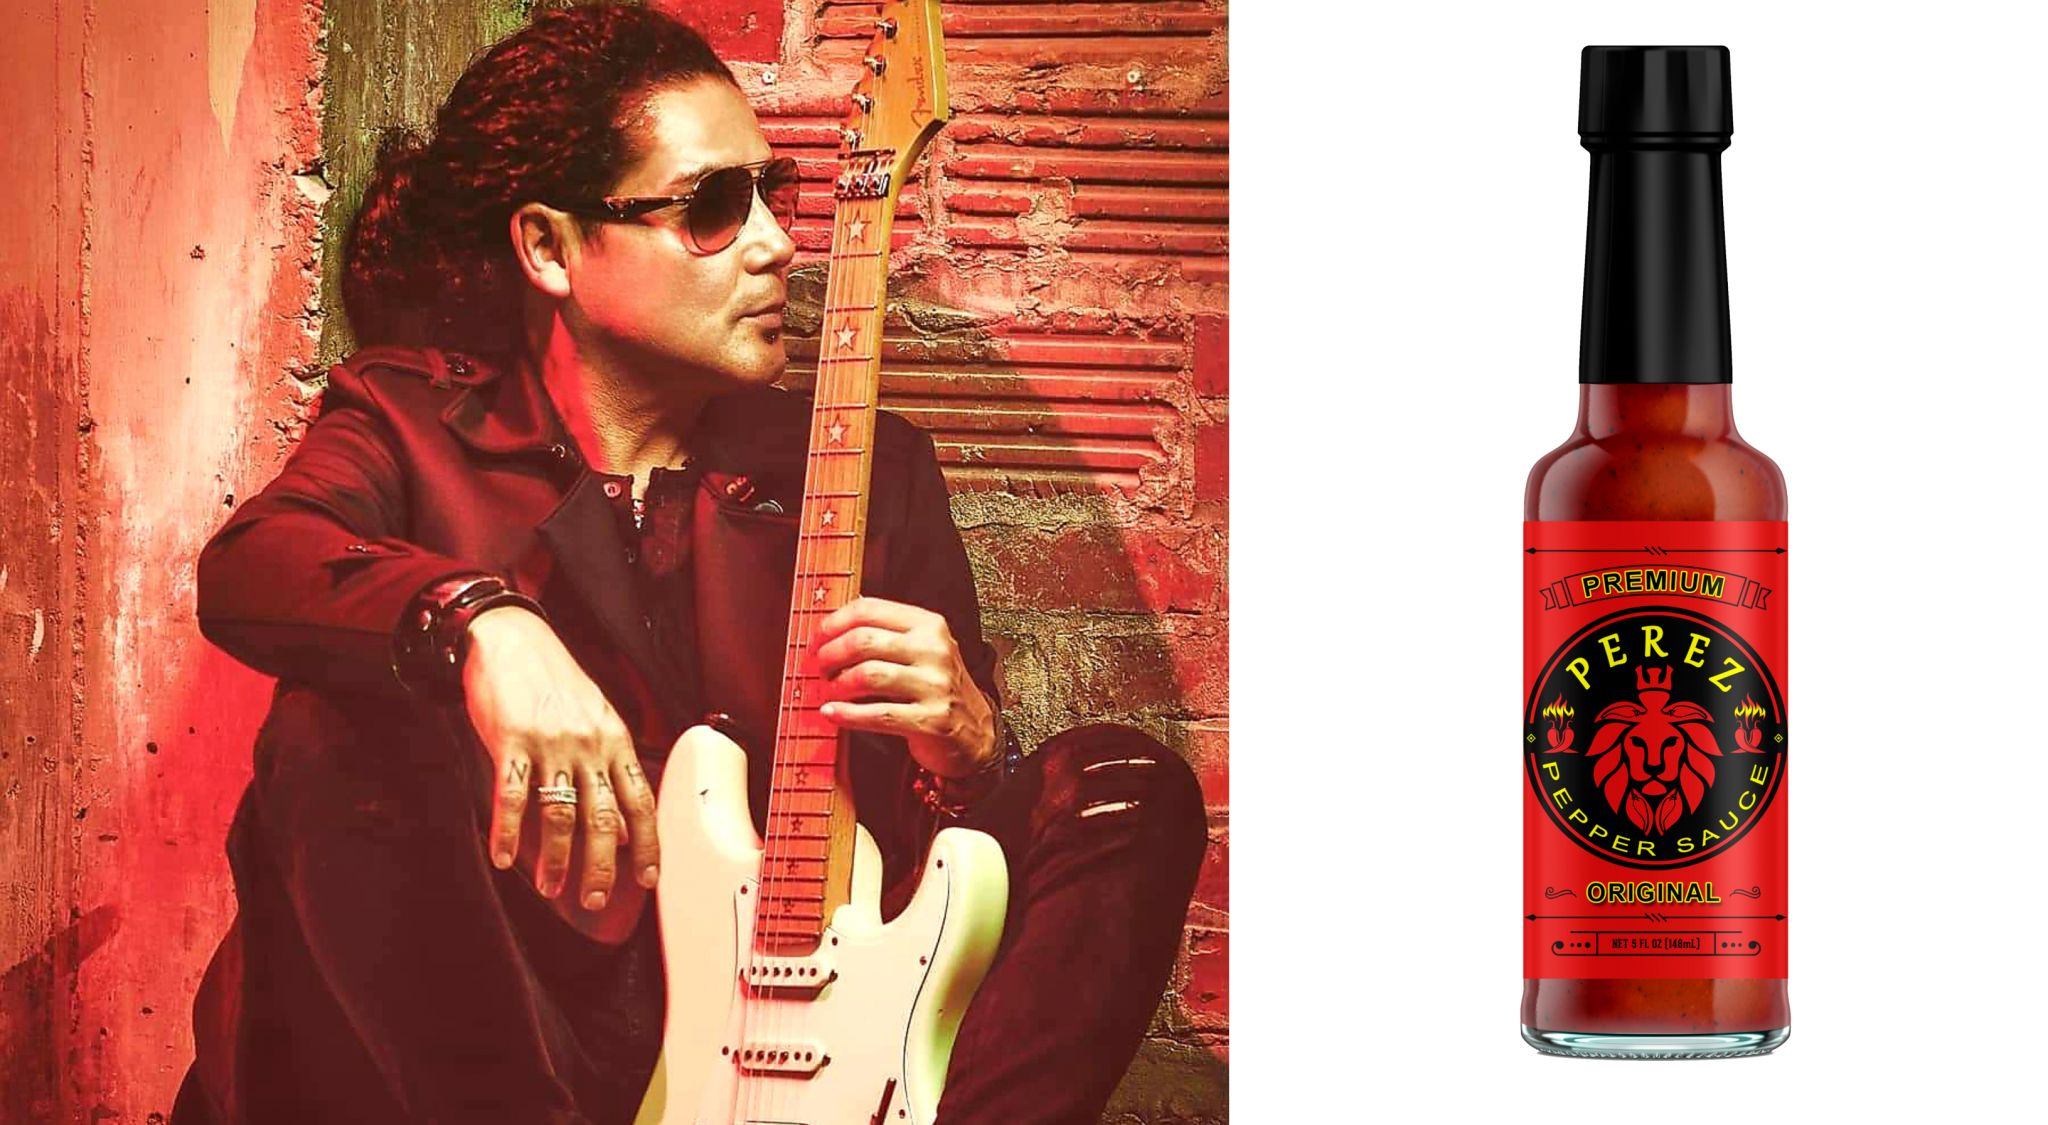 Chris Perez is releasing his own brand of hot sauce